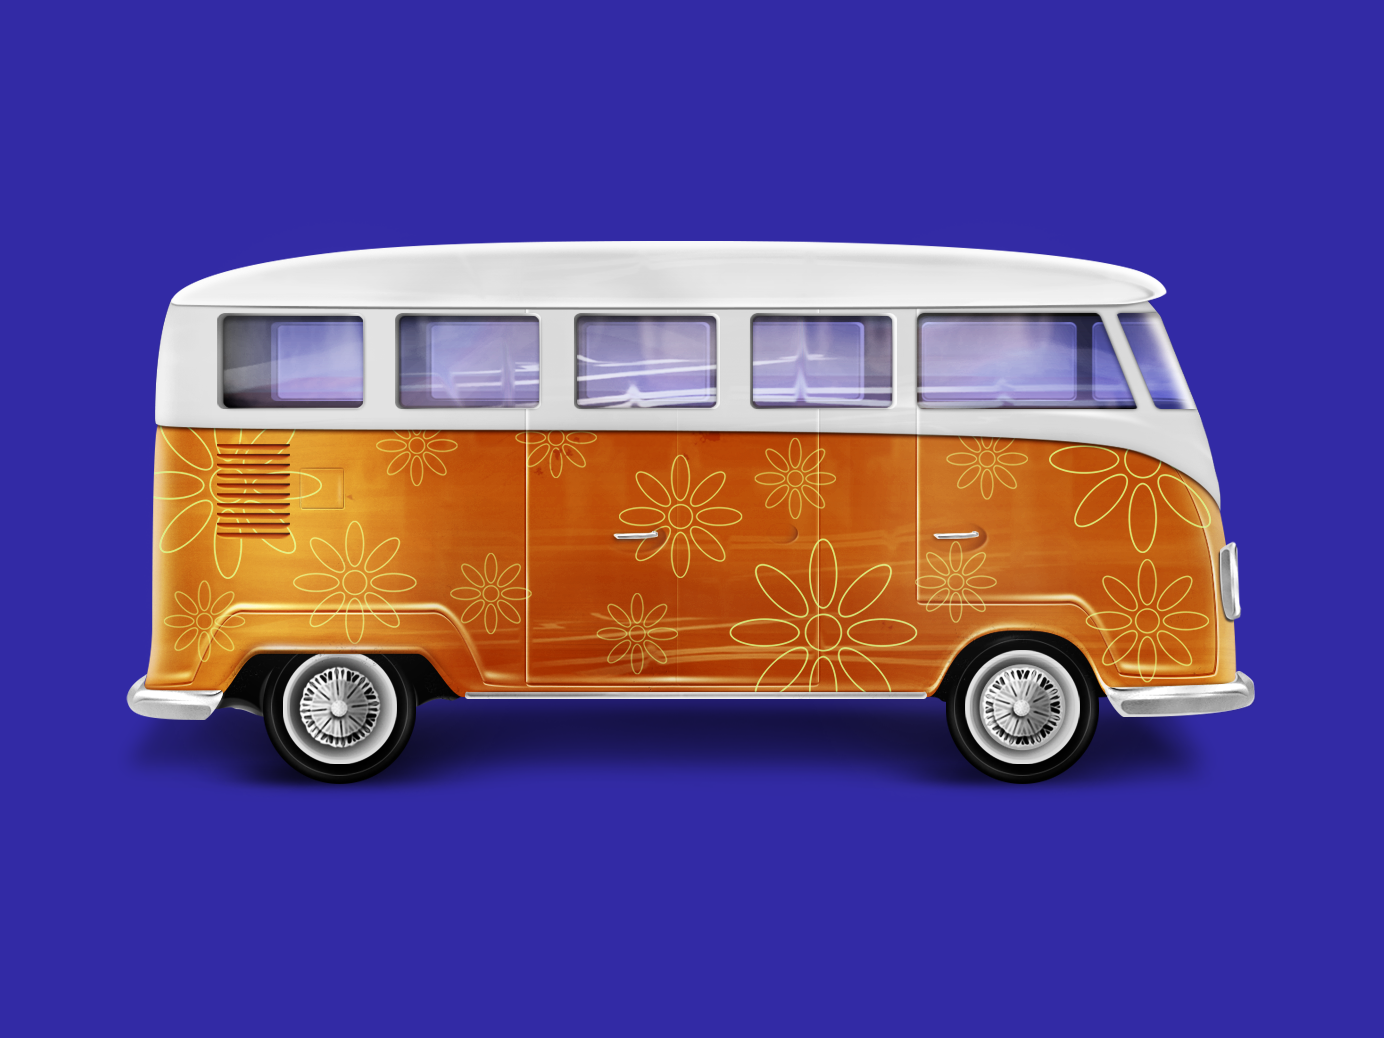 VW Bus illustration 3d illustration 3d photoshop